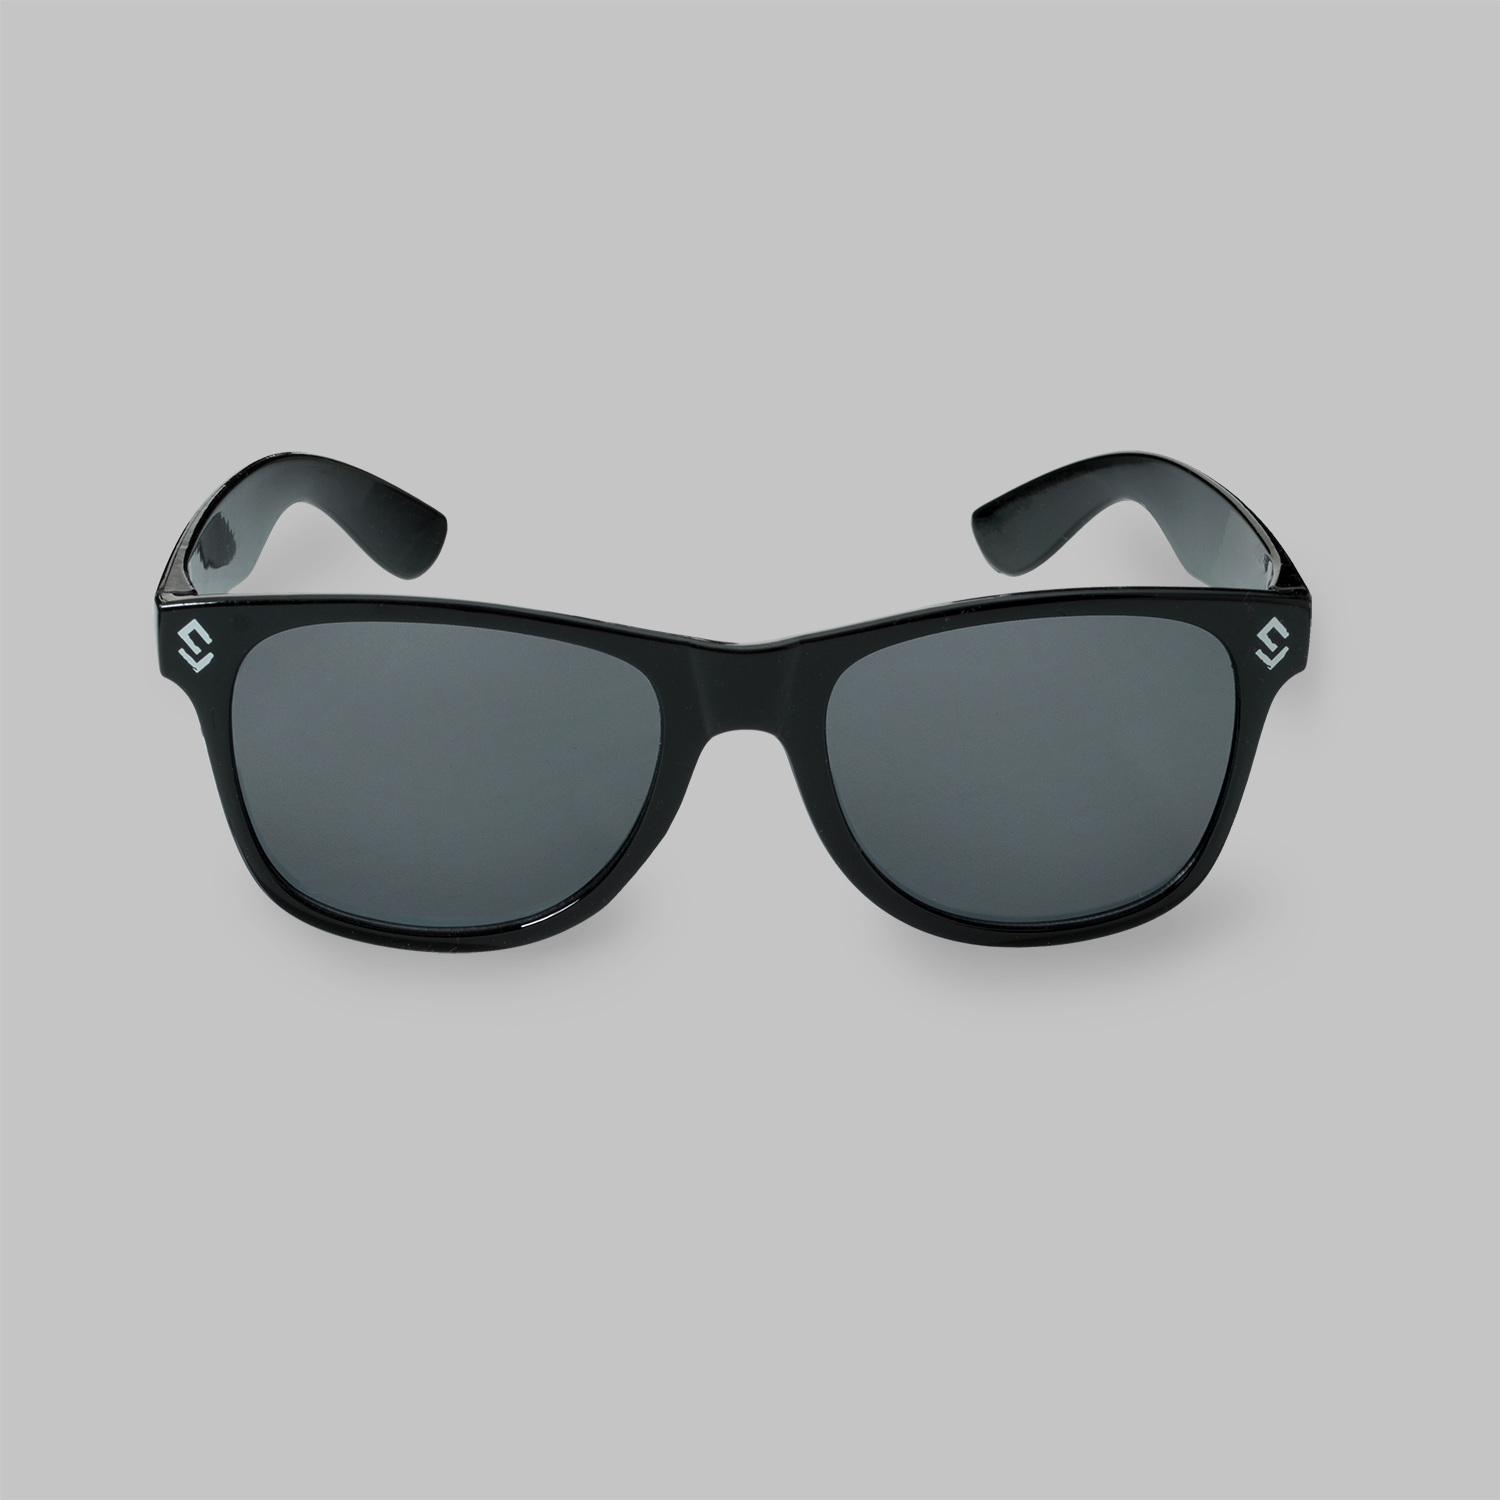 Sefa sunglasses black-2